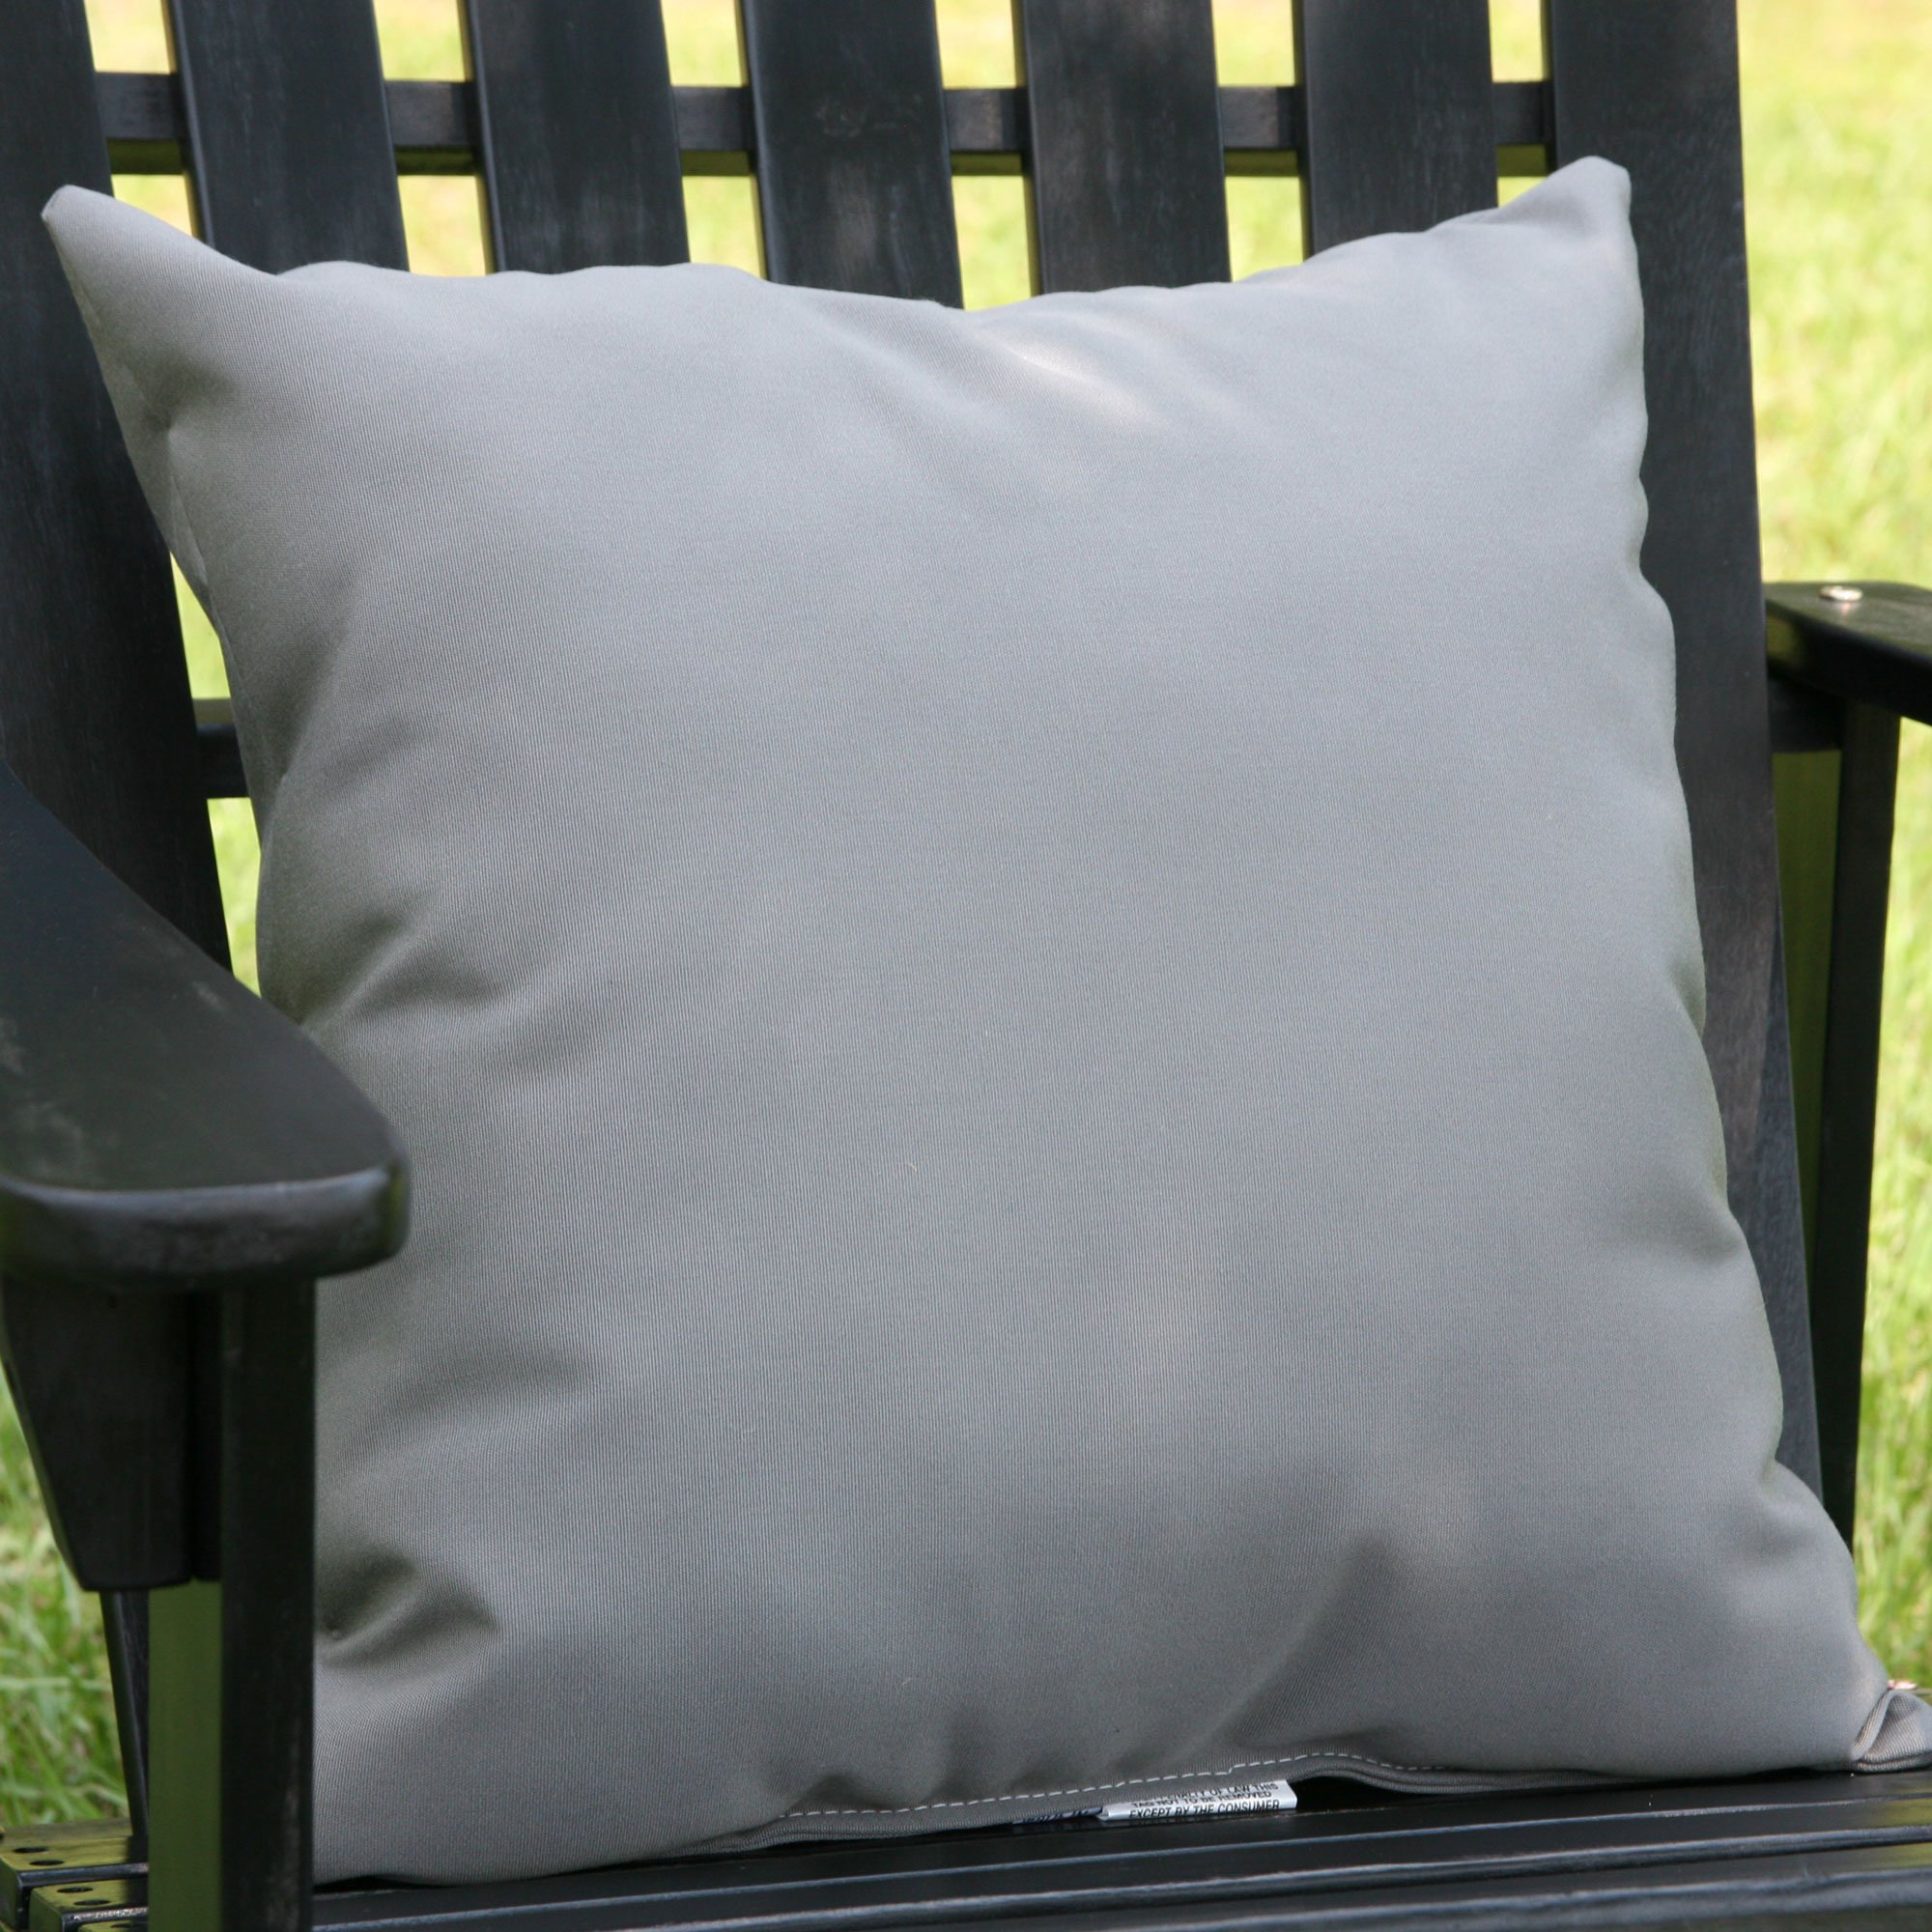 charcoal gray sunbrella outdoor throw pillow - Sunbrella Pillows